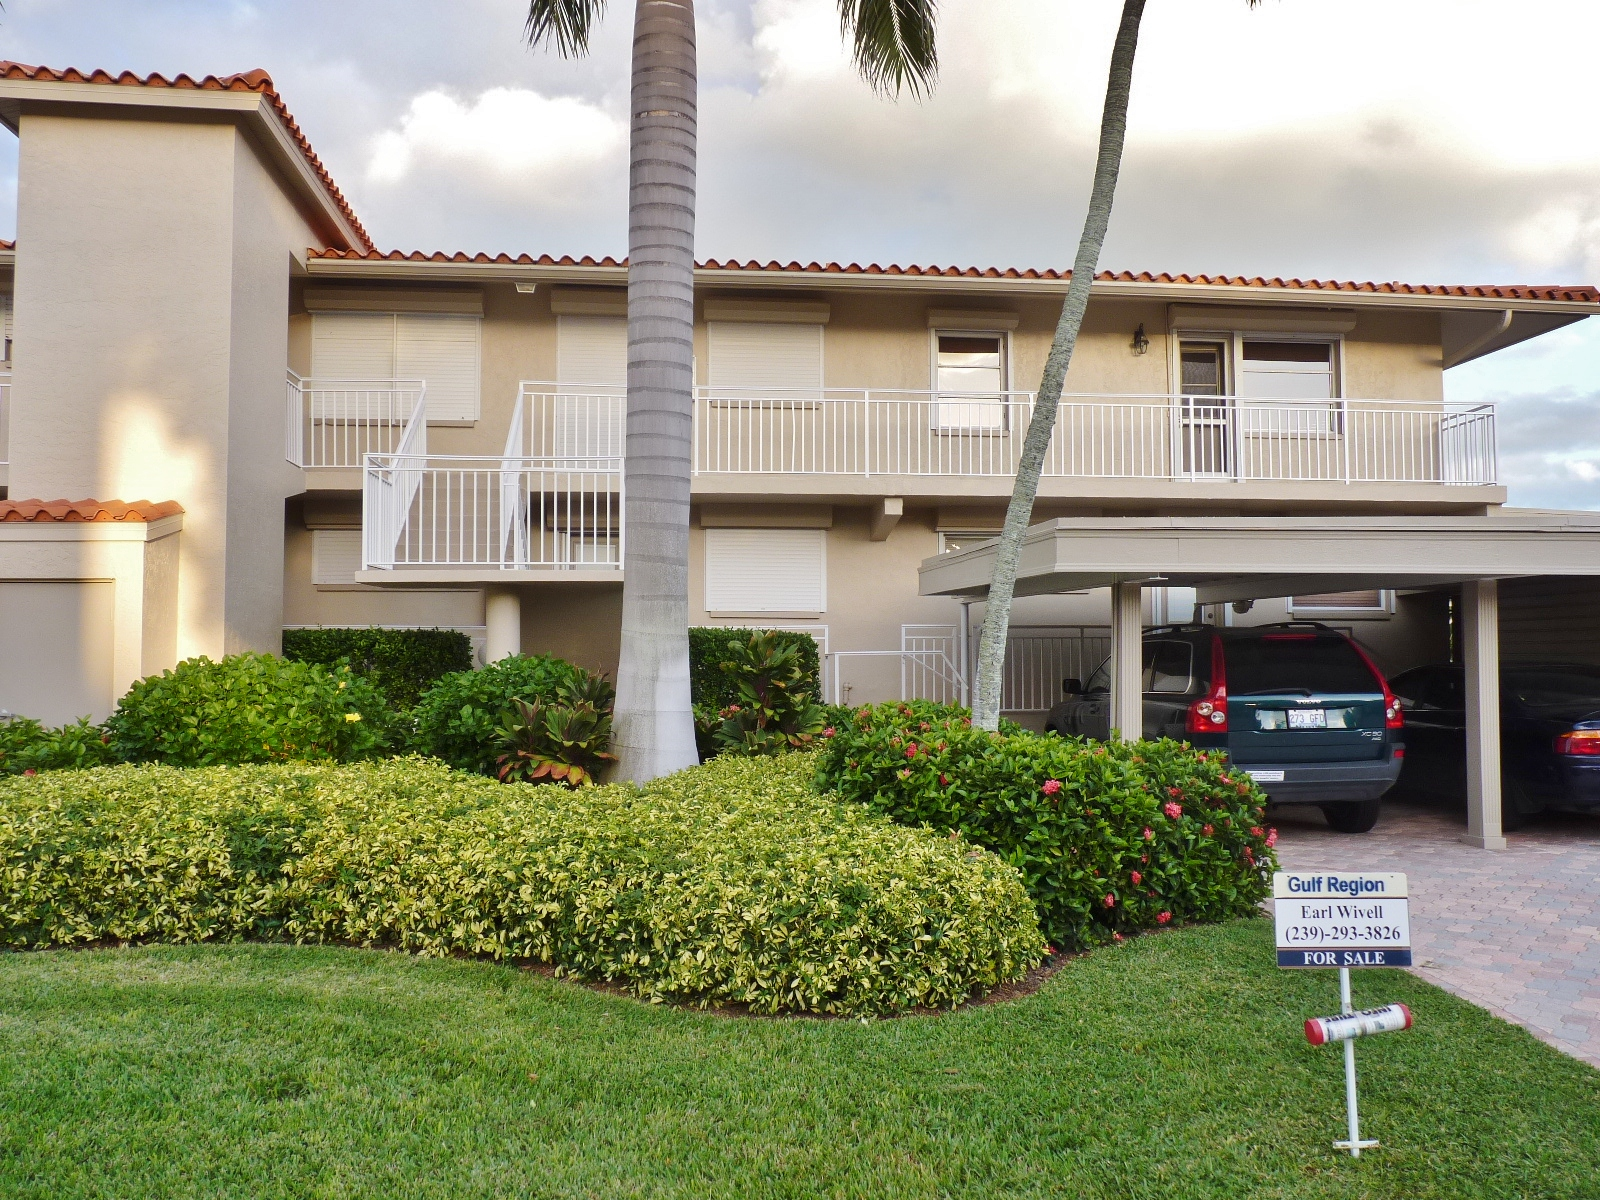 Waterfront Condo For Sale - Naples Florida Real Estate